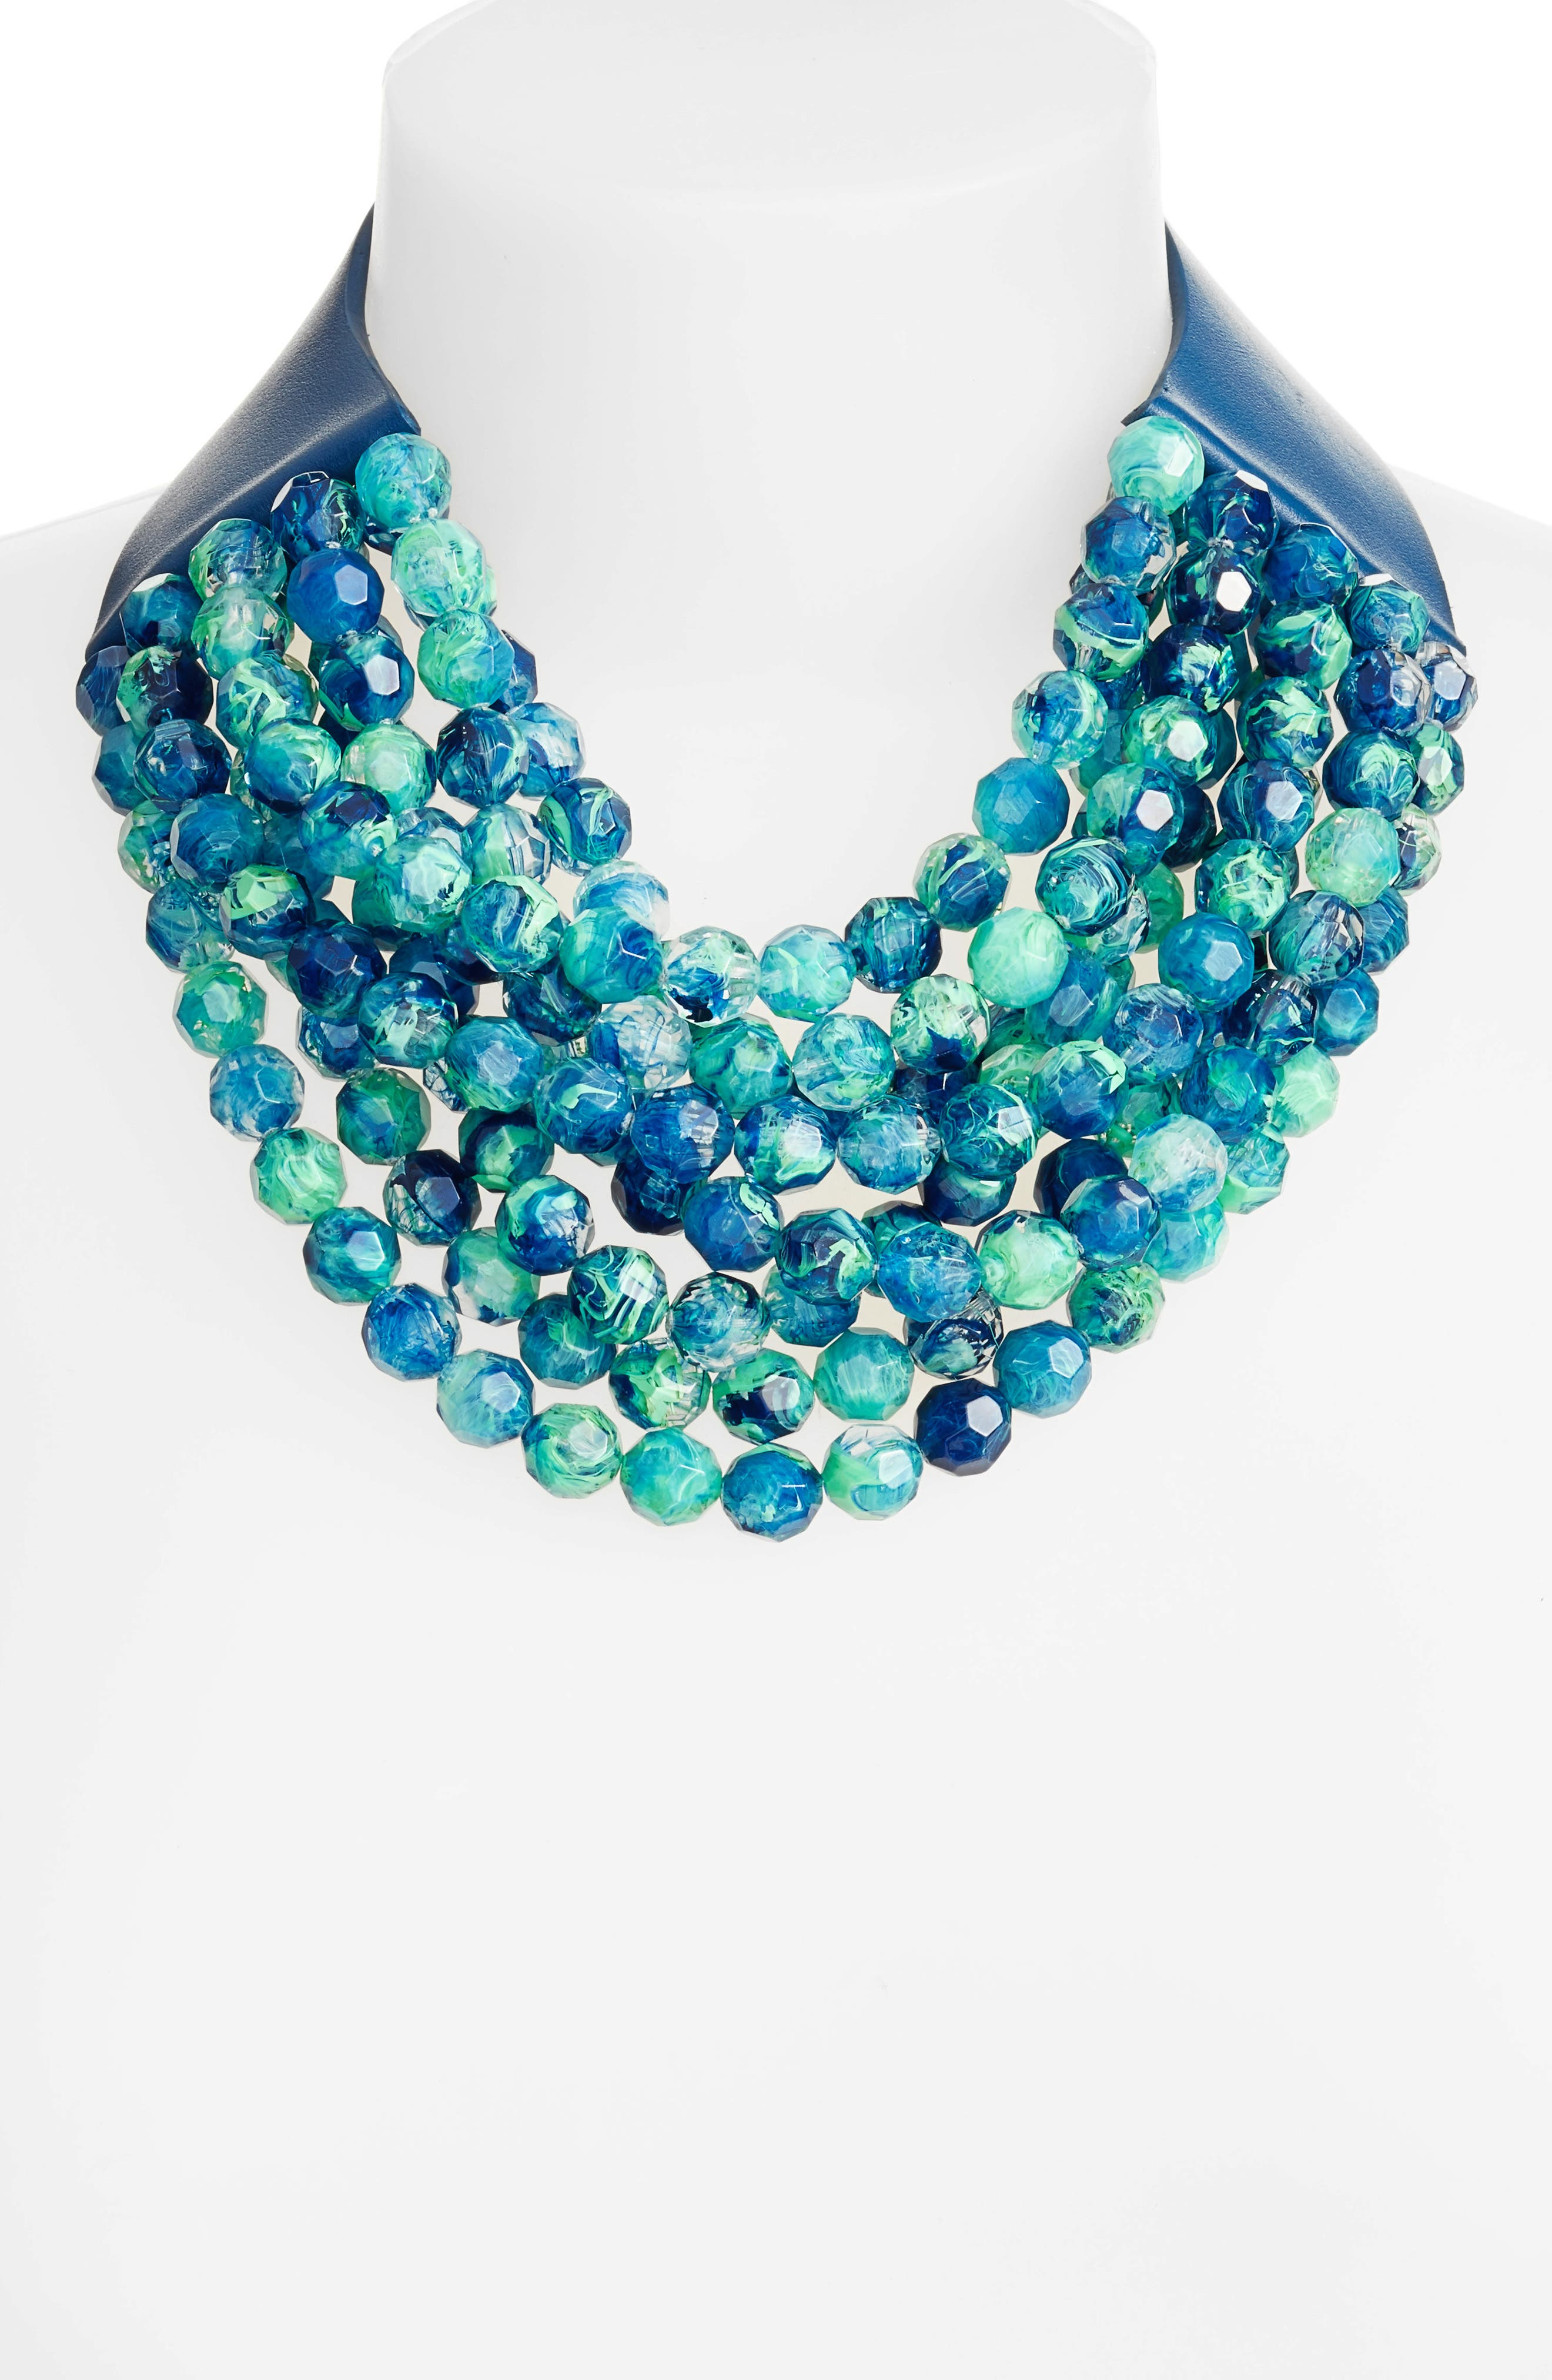 Bella Beaded Collar Necklace,                             Alternate thumbnail 2, color,                             TRANSPARENT MARBLE SEA GREEN